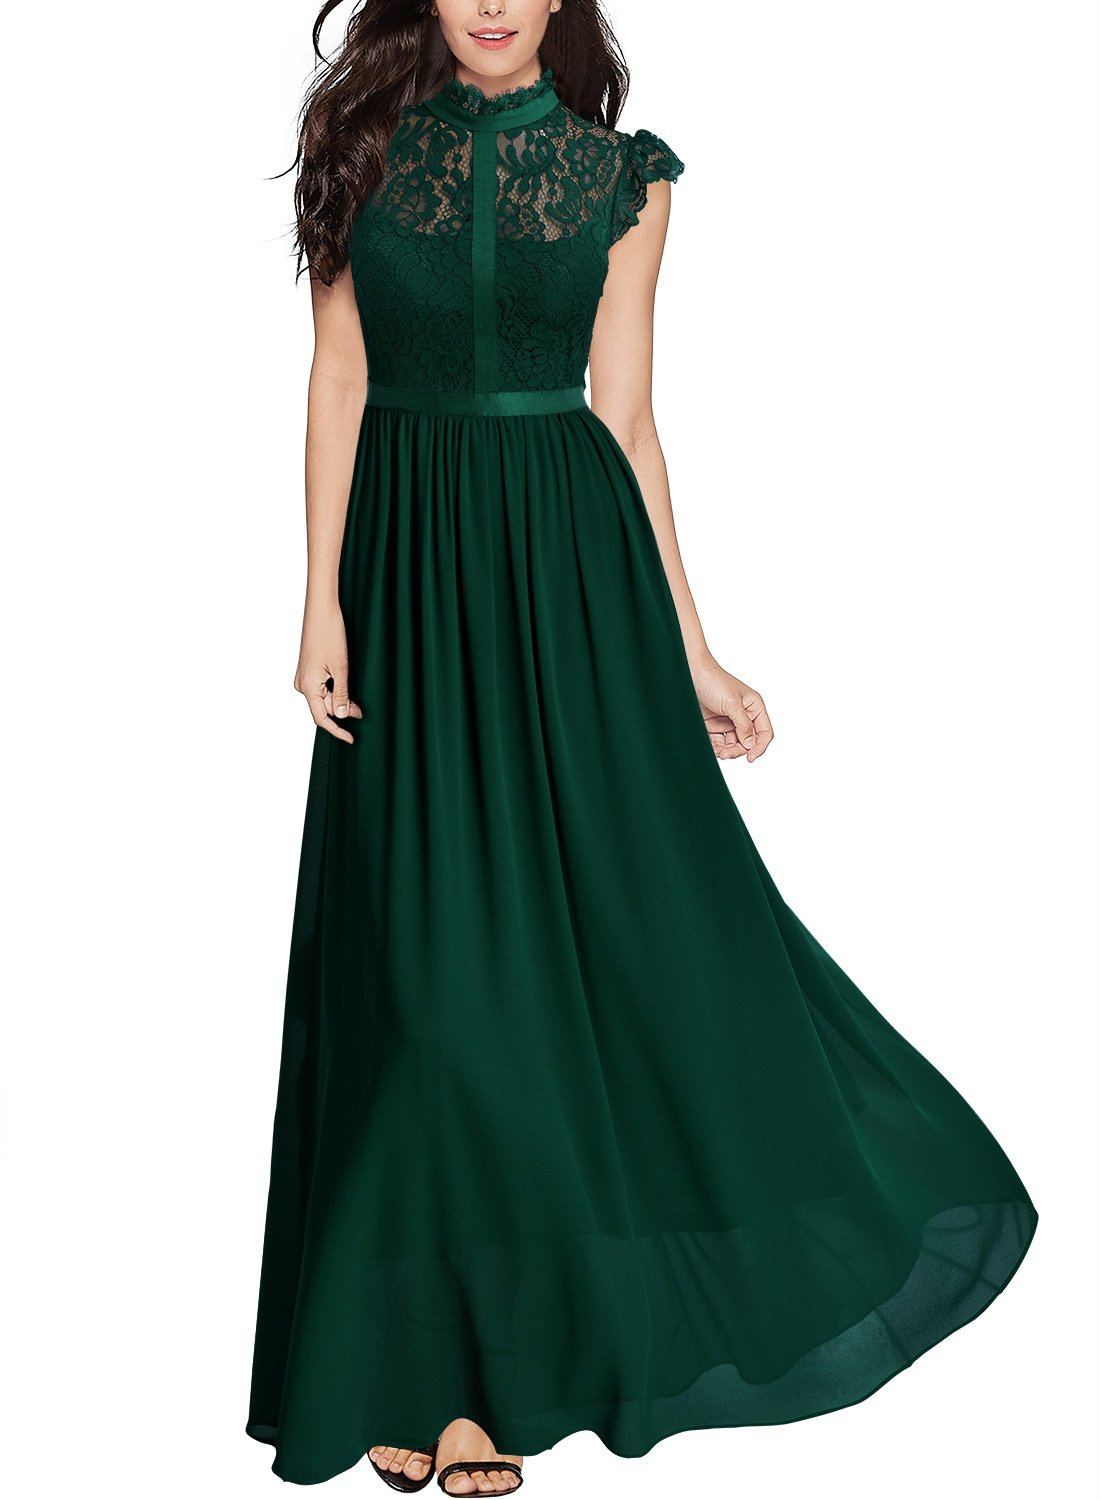 Wedding Guest Dresses - Women's Formal Floral Lace Wedding Bridesmaid Maxi Dress